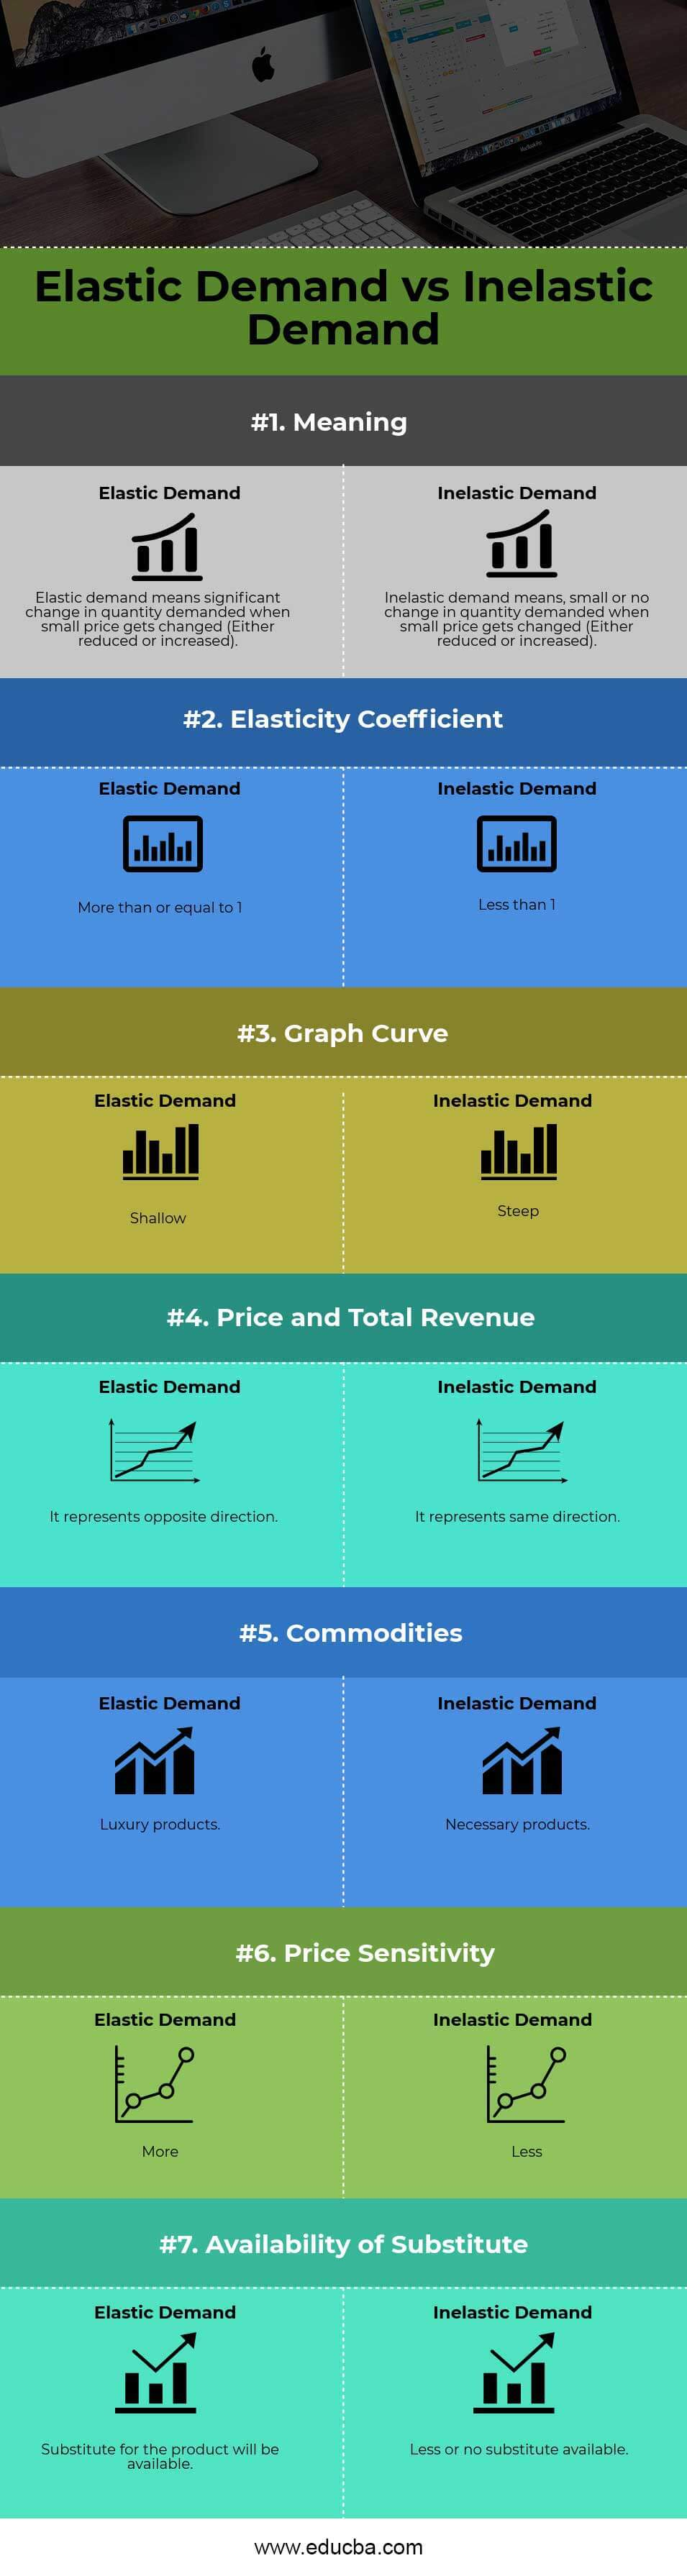 Elastic Demand Vs Inelastic Demand Top 7 Useful Differences